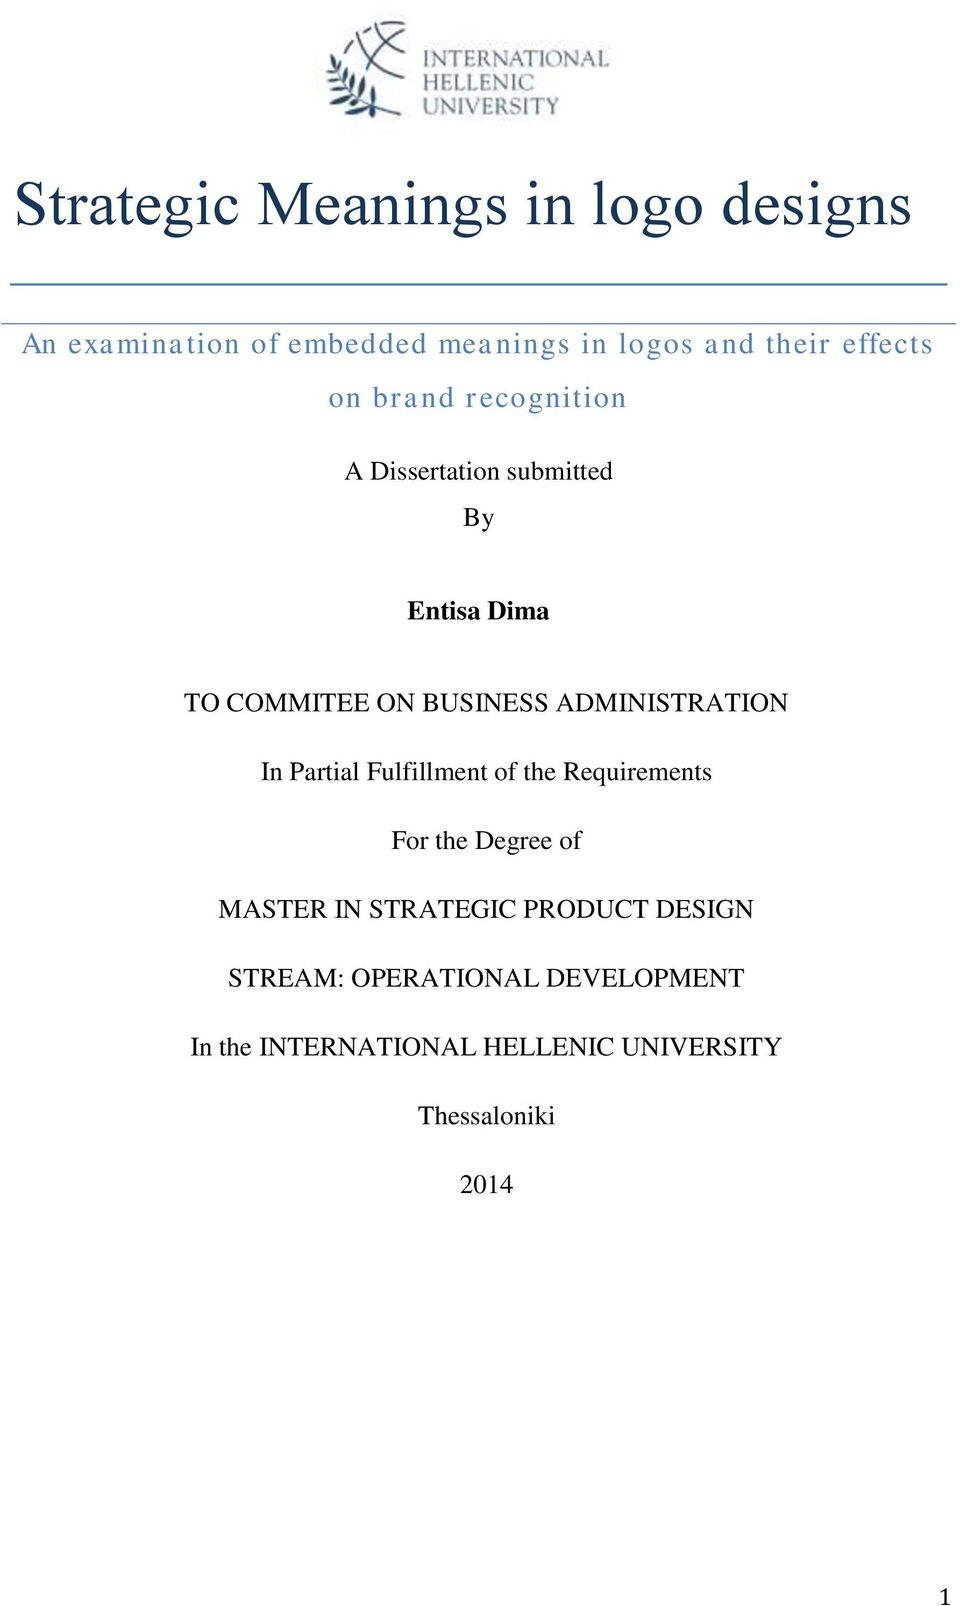 ADMINISTRATION In Partial Fulfillment of the Requirements For the Degree of MASTER IN STRATEGIC